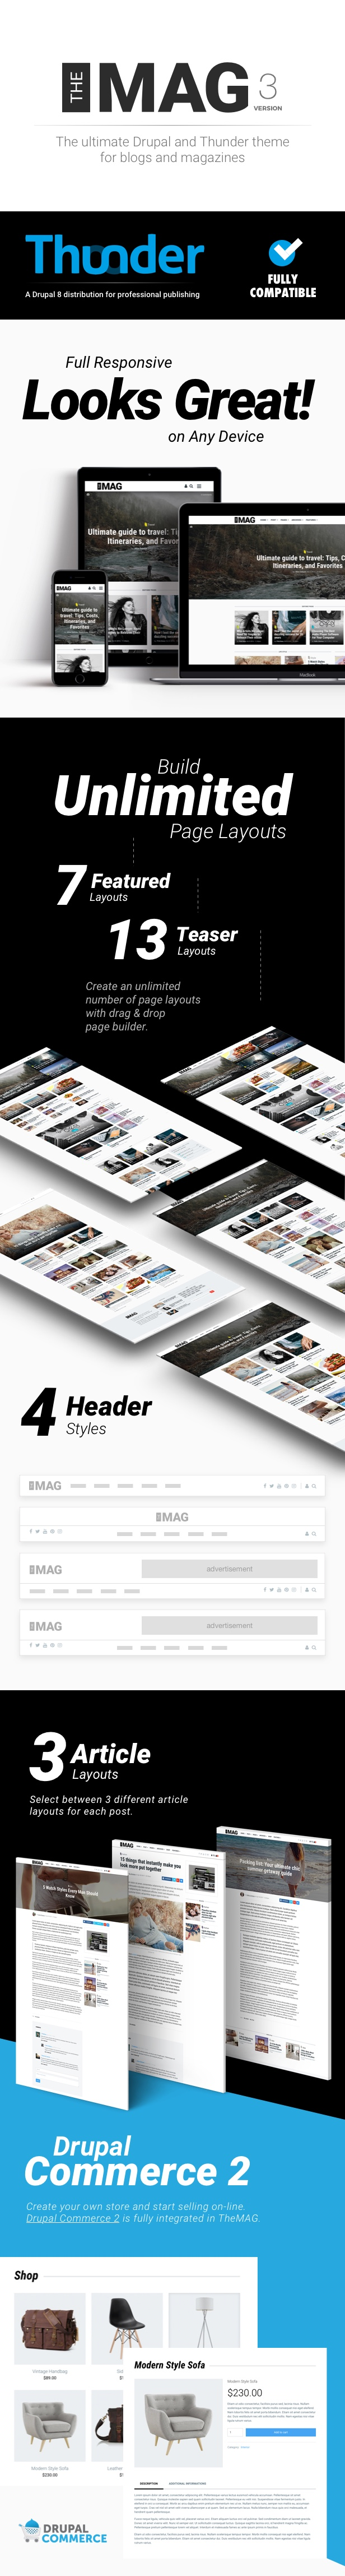 TheMAG theme for Drupal and Drupal Thunder